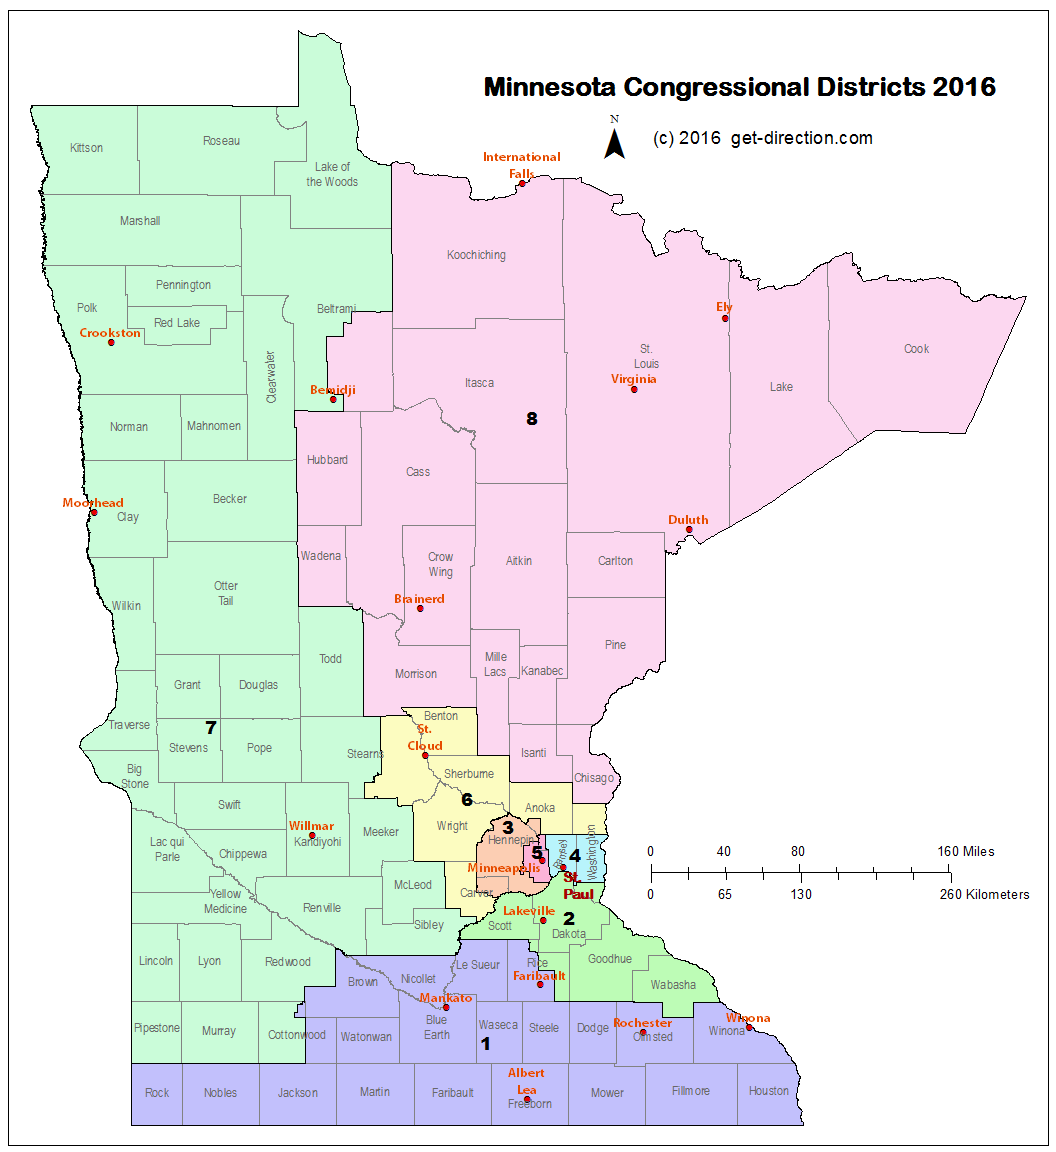 minnesota-congressional-districts-2016.png